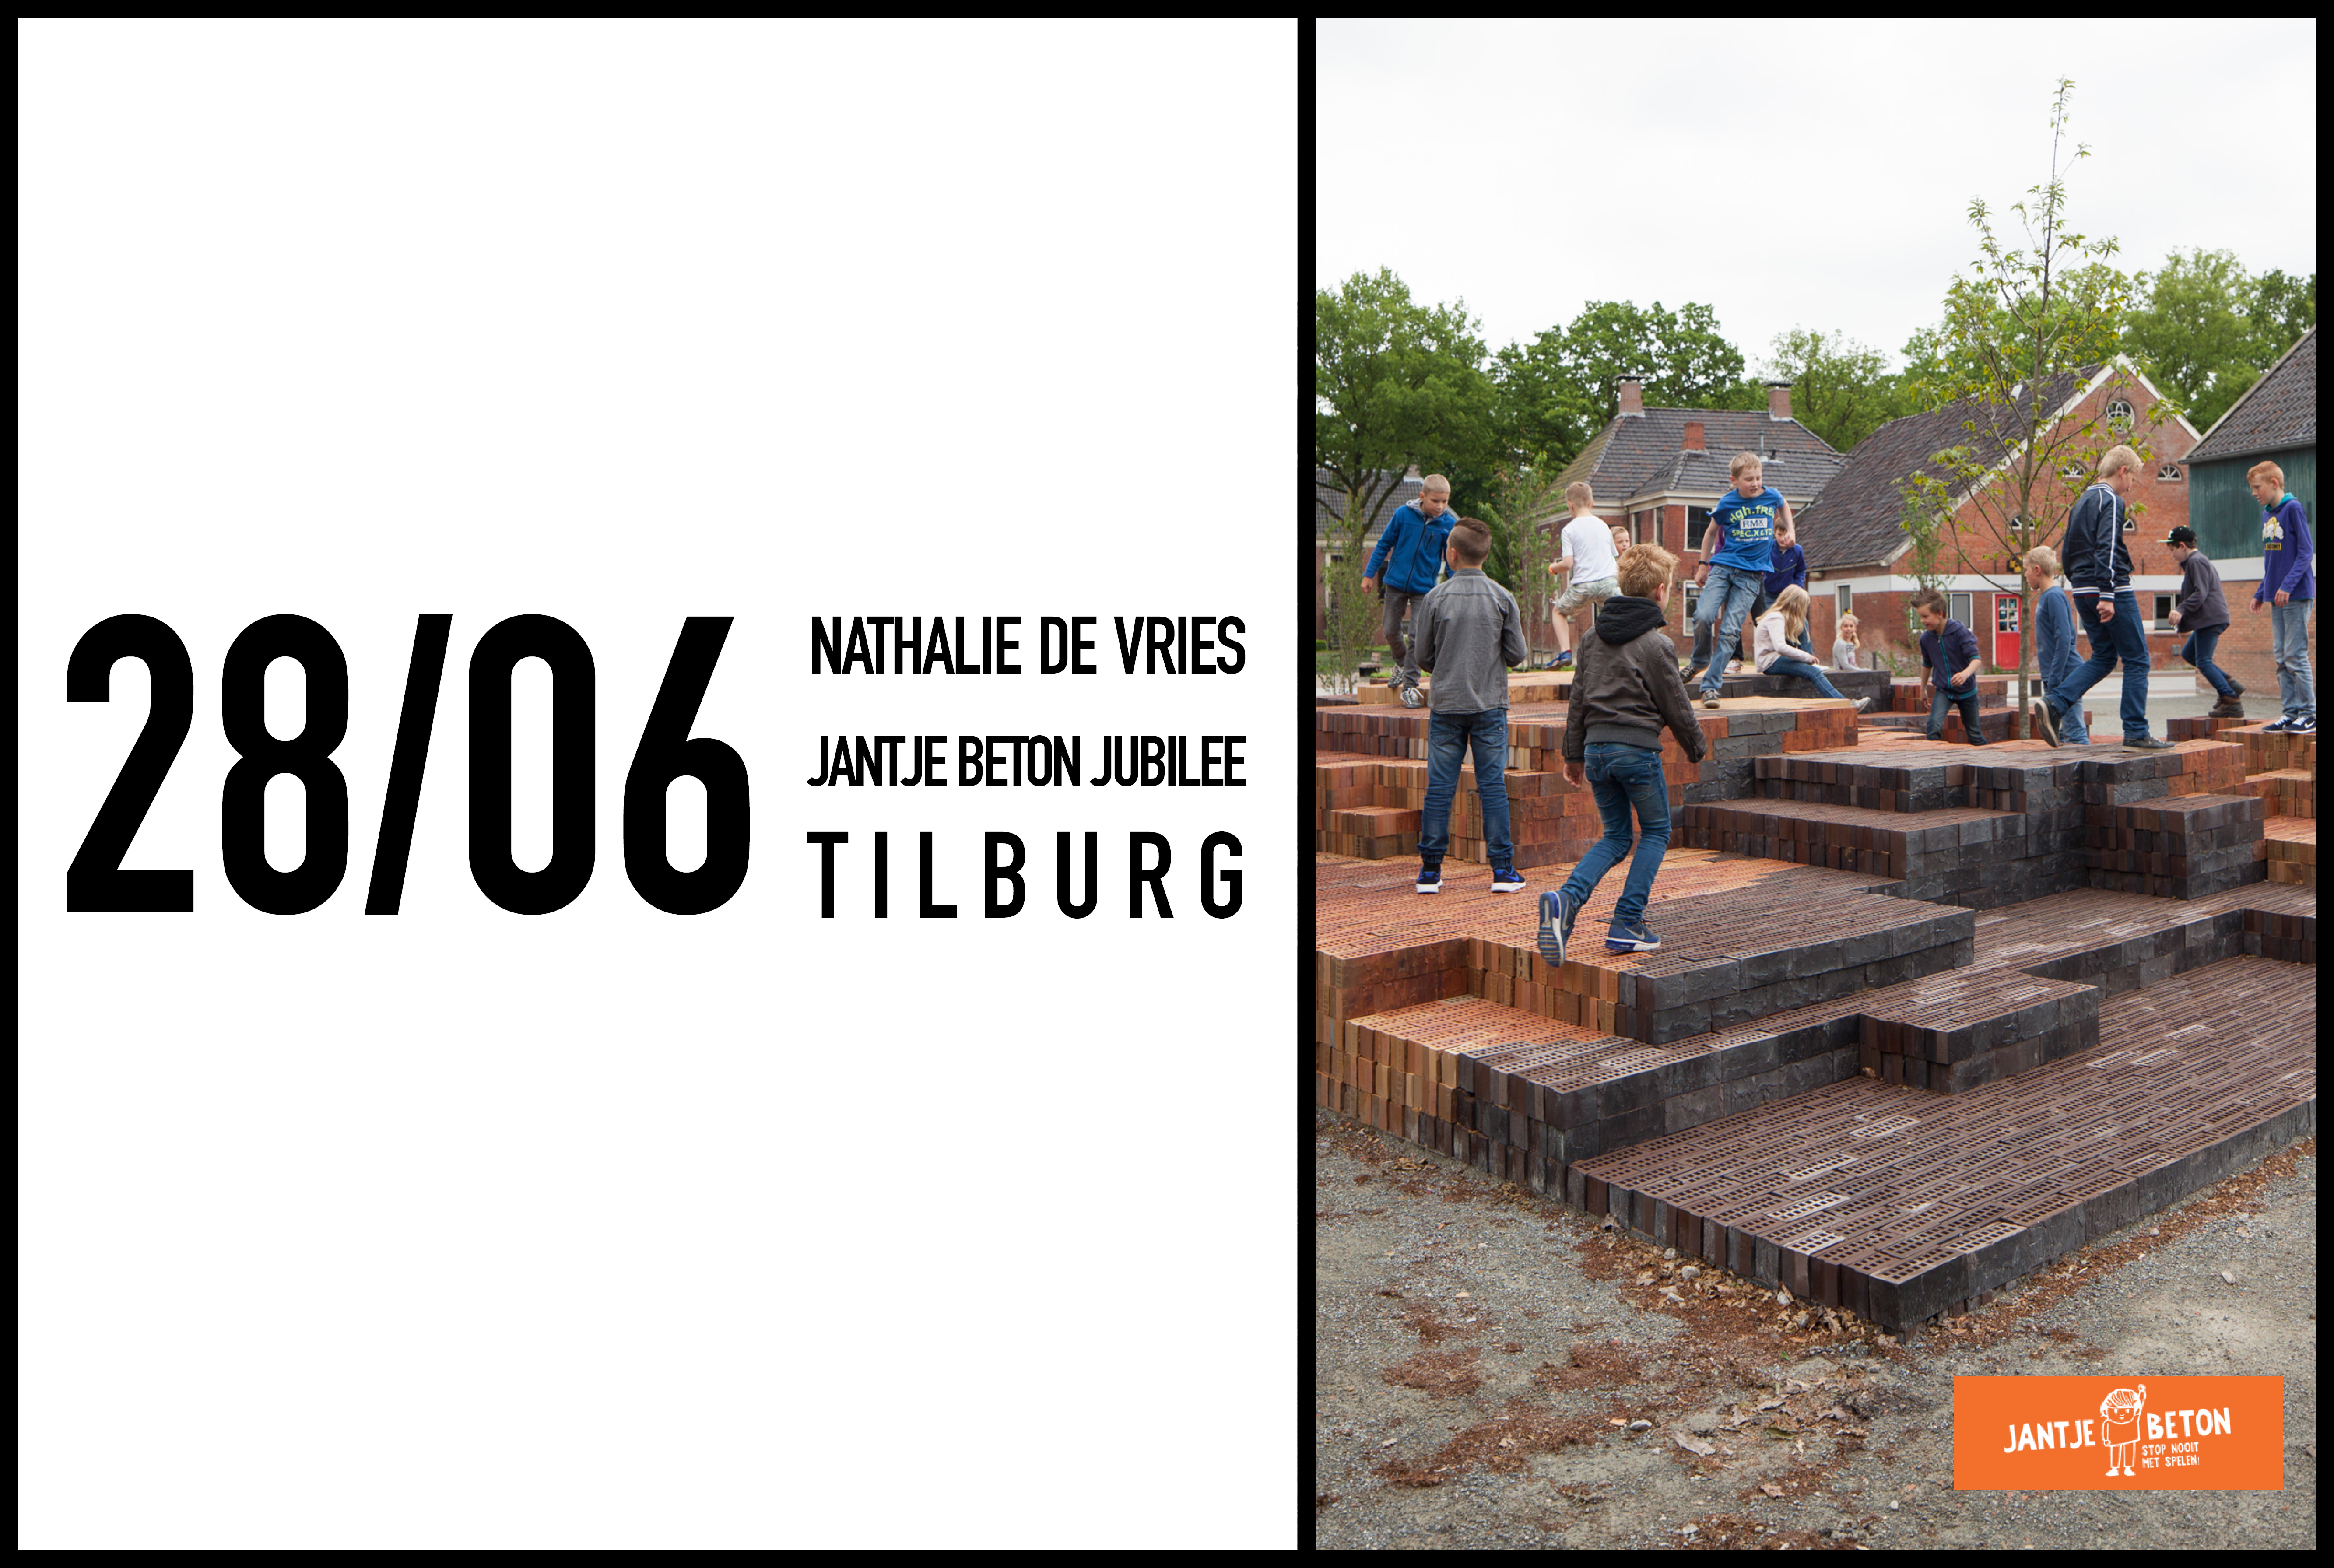 Nathalie de Vries to speak at Jantje Beton 50 Years Jubilee